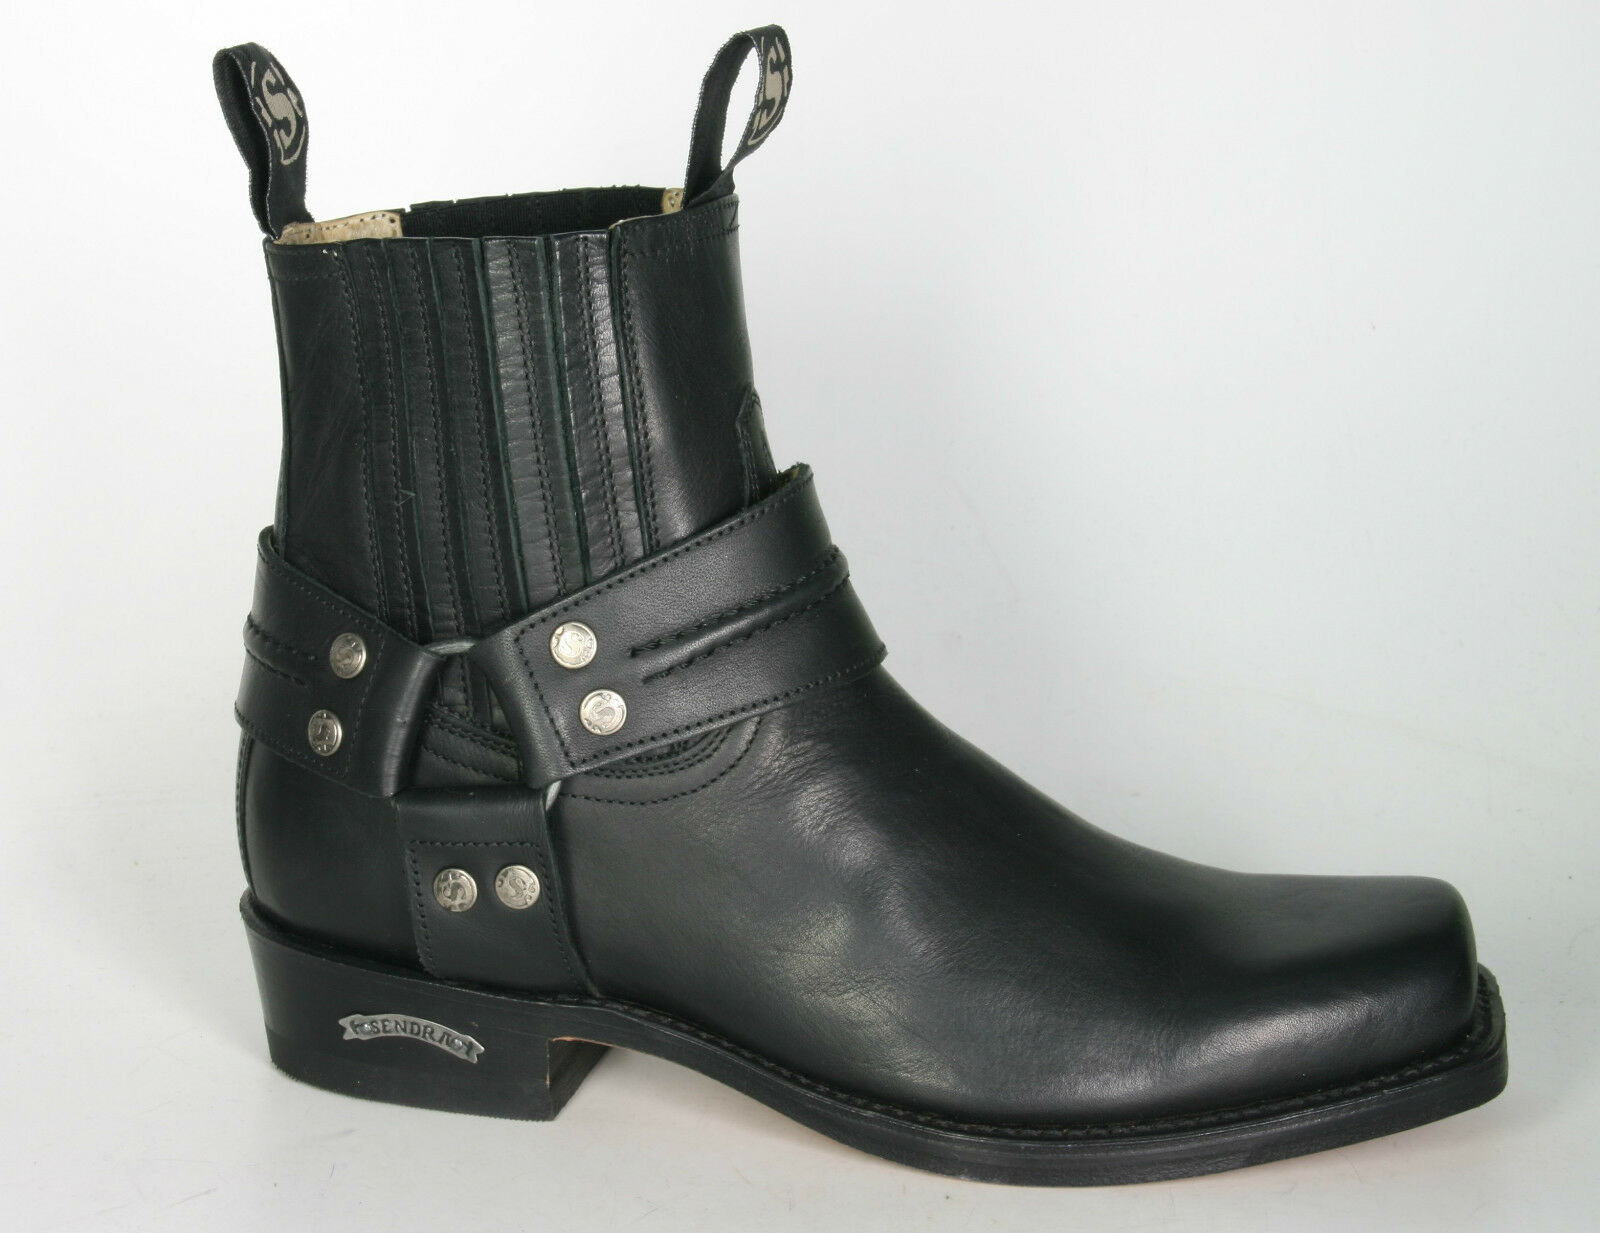 Sendra 2746 Men Cowboy Boots Black Leather Ankle Western Biker